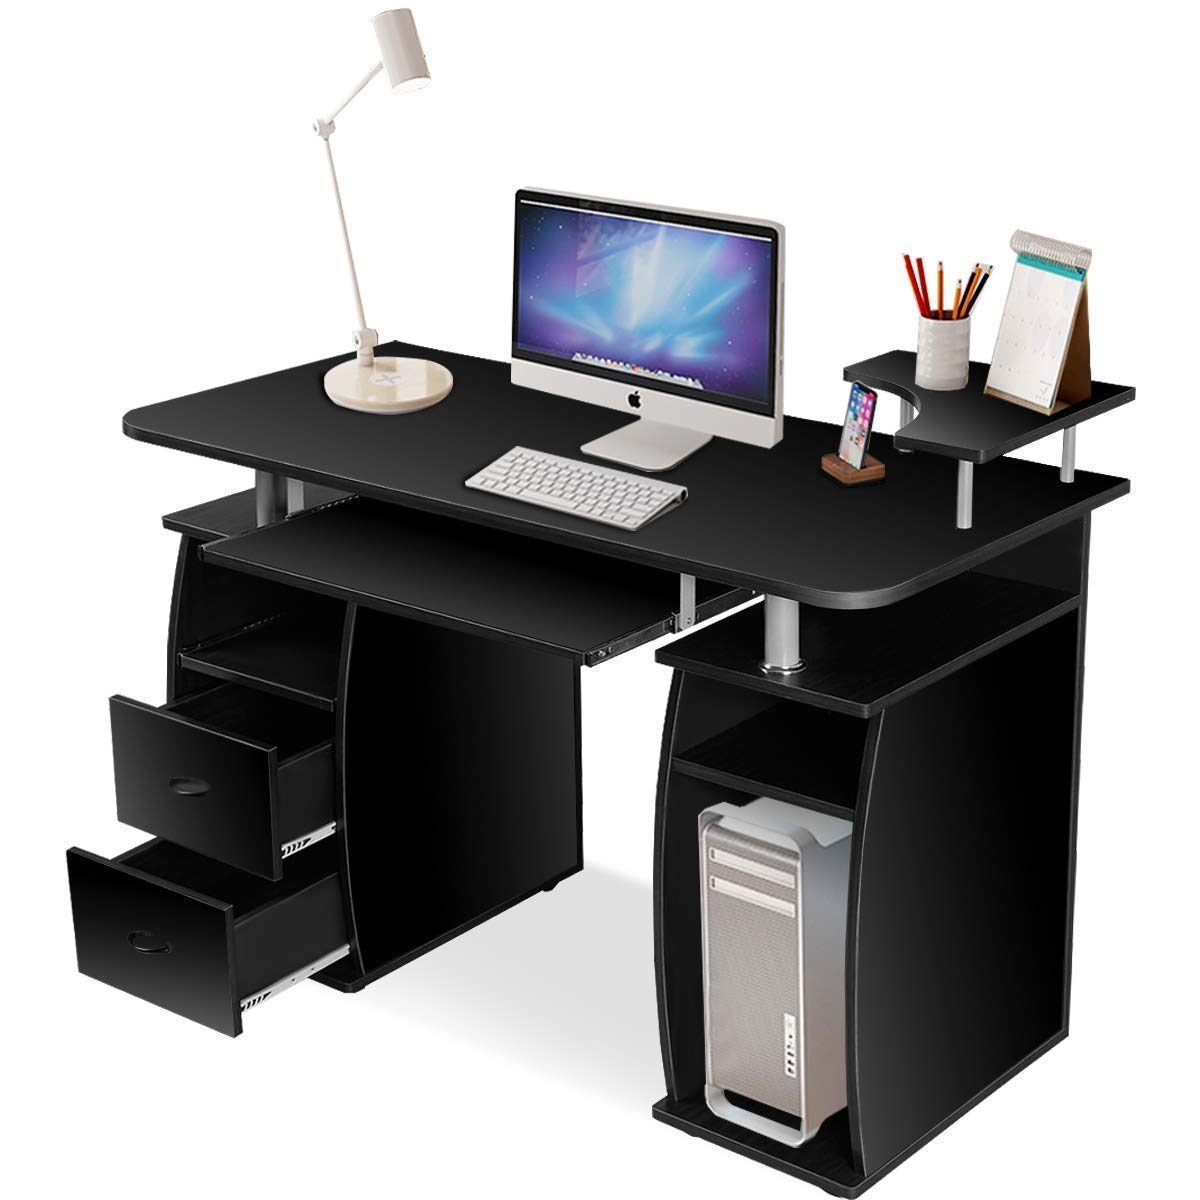 TANGKULA Wood Computer Desk Home Office Desk Laptop PC Computer Work Station with Storage Drawer, Pull-Out Keyboard Tray & Monitor and Printer Shelf (Black)